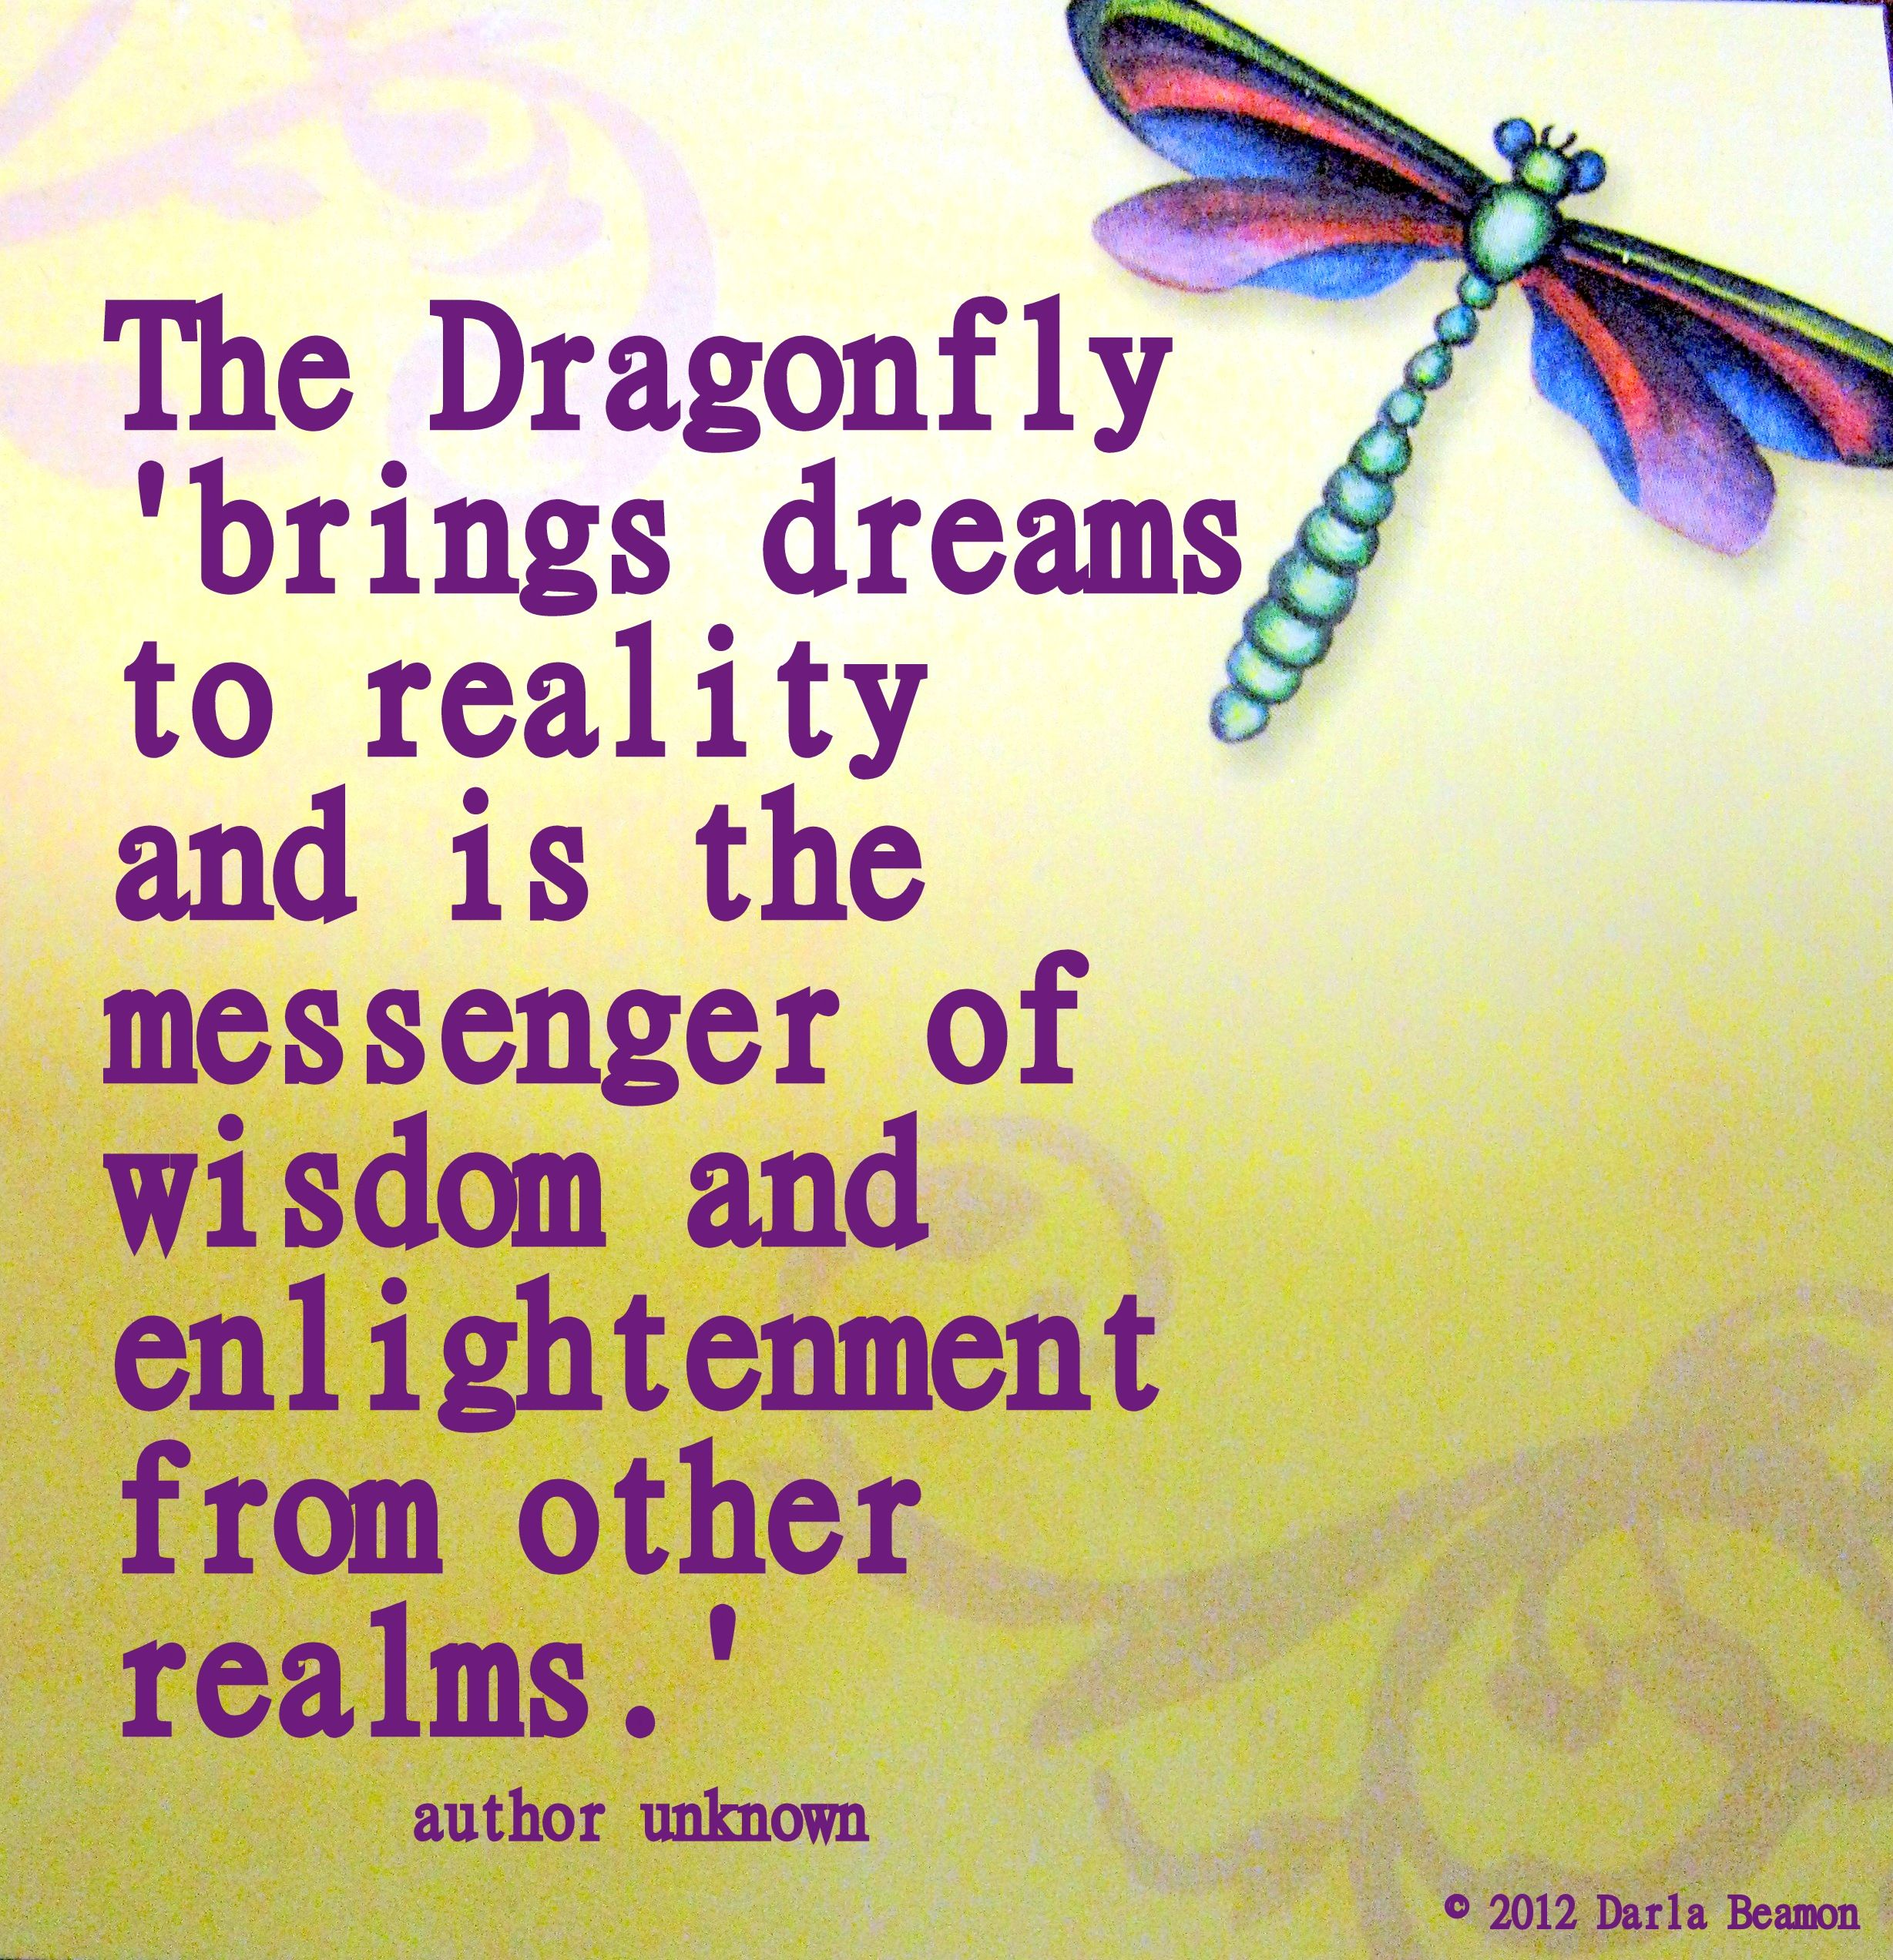 the dragonfly brings dreams to reality and is the messenger of